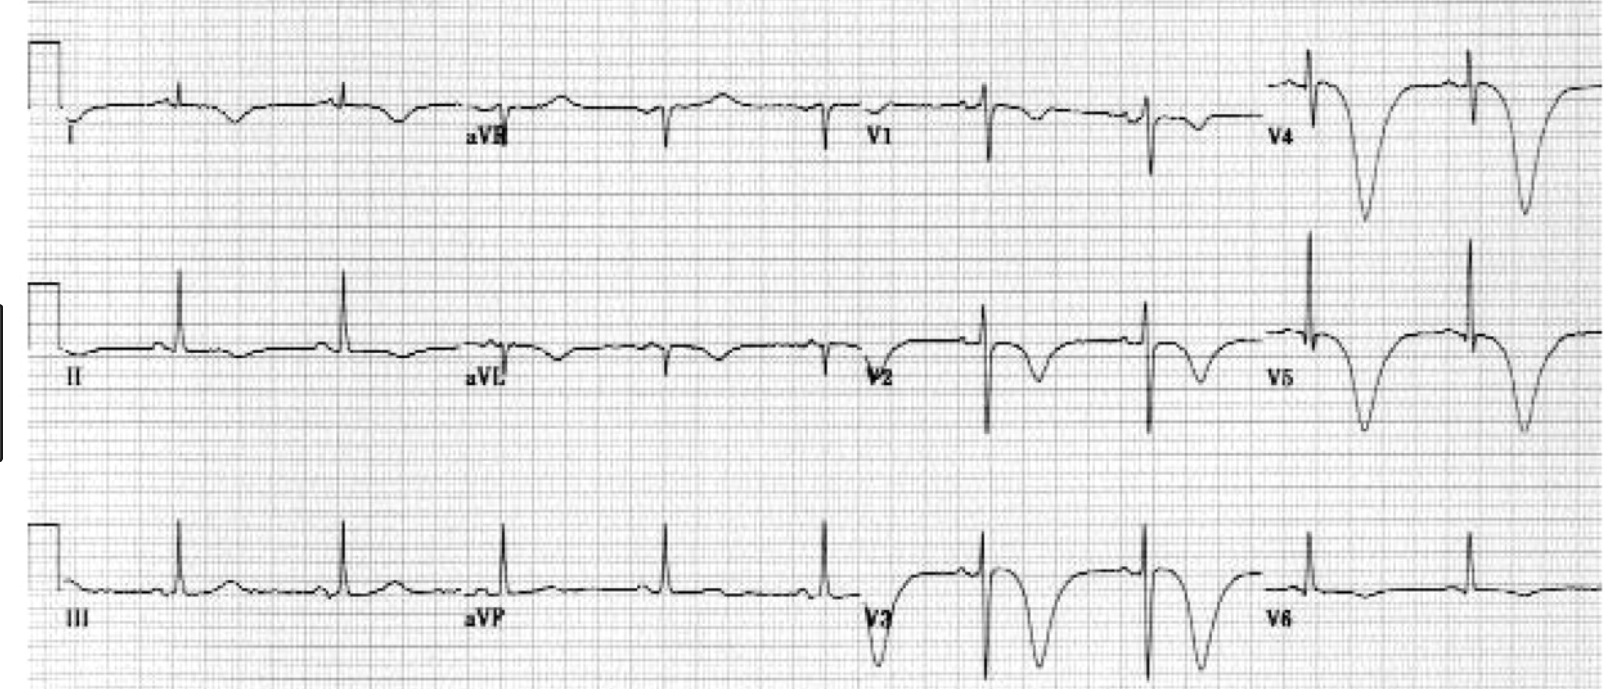 Pictured are Cerebral T waves which can be seen in subarachnoid hemorrhage. Subarachnoid hemorrhage can cause changes on the EKG such as deep t wave inversions or ST elevation.   ECG Findings of Cerebral T Waves   Inverted, wide T waves are most notable in precordial leads (can be seen in any lead).  QT interval prolongation.   Pearls   These are associated with acute cerebral disease, most notably an ischemic cerebrovascular event or subarachnoid hemorrhage.  They may be accompanied by ST segment changes, U waves, and/or any rhythm abnormality.  Differential diagnosis includes extensive myocardial ischemia.  Strongly suspect an intracranial etiology in a patient with altered mental status and these electrocardiographic findings. (Atlas of EM)